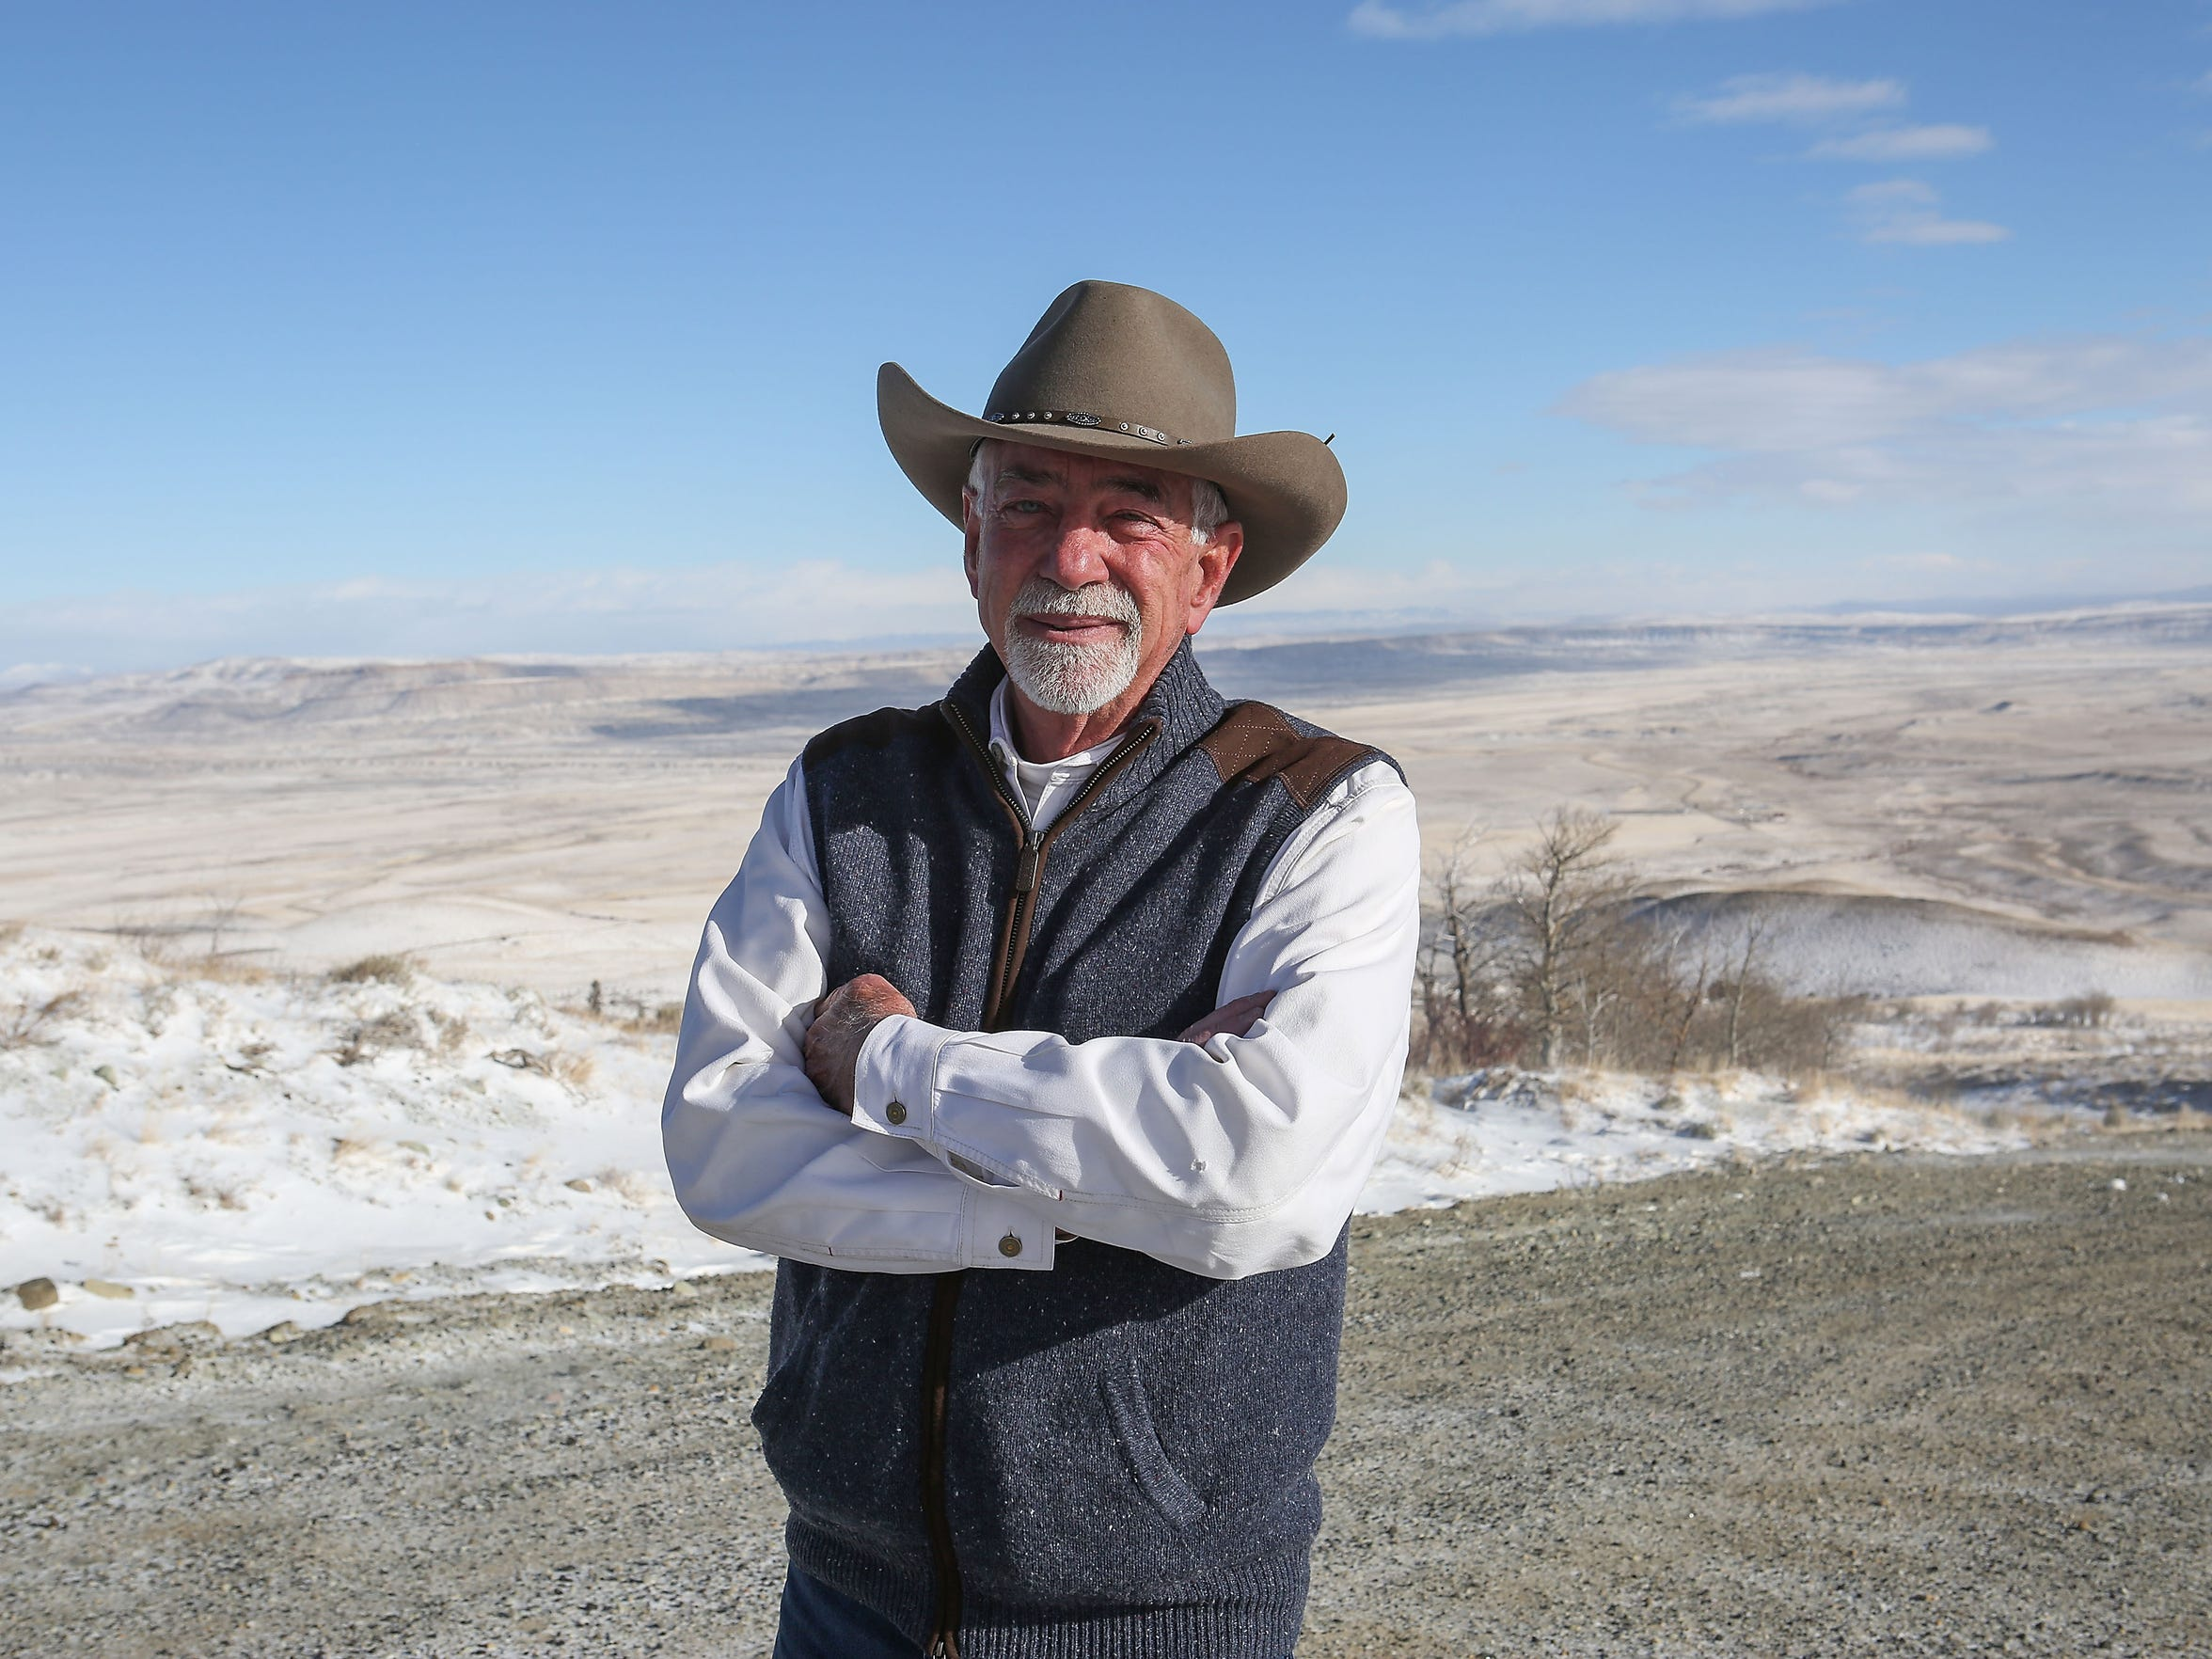 Bill Miller, who oversees the development of the Chokecherry